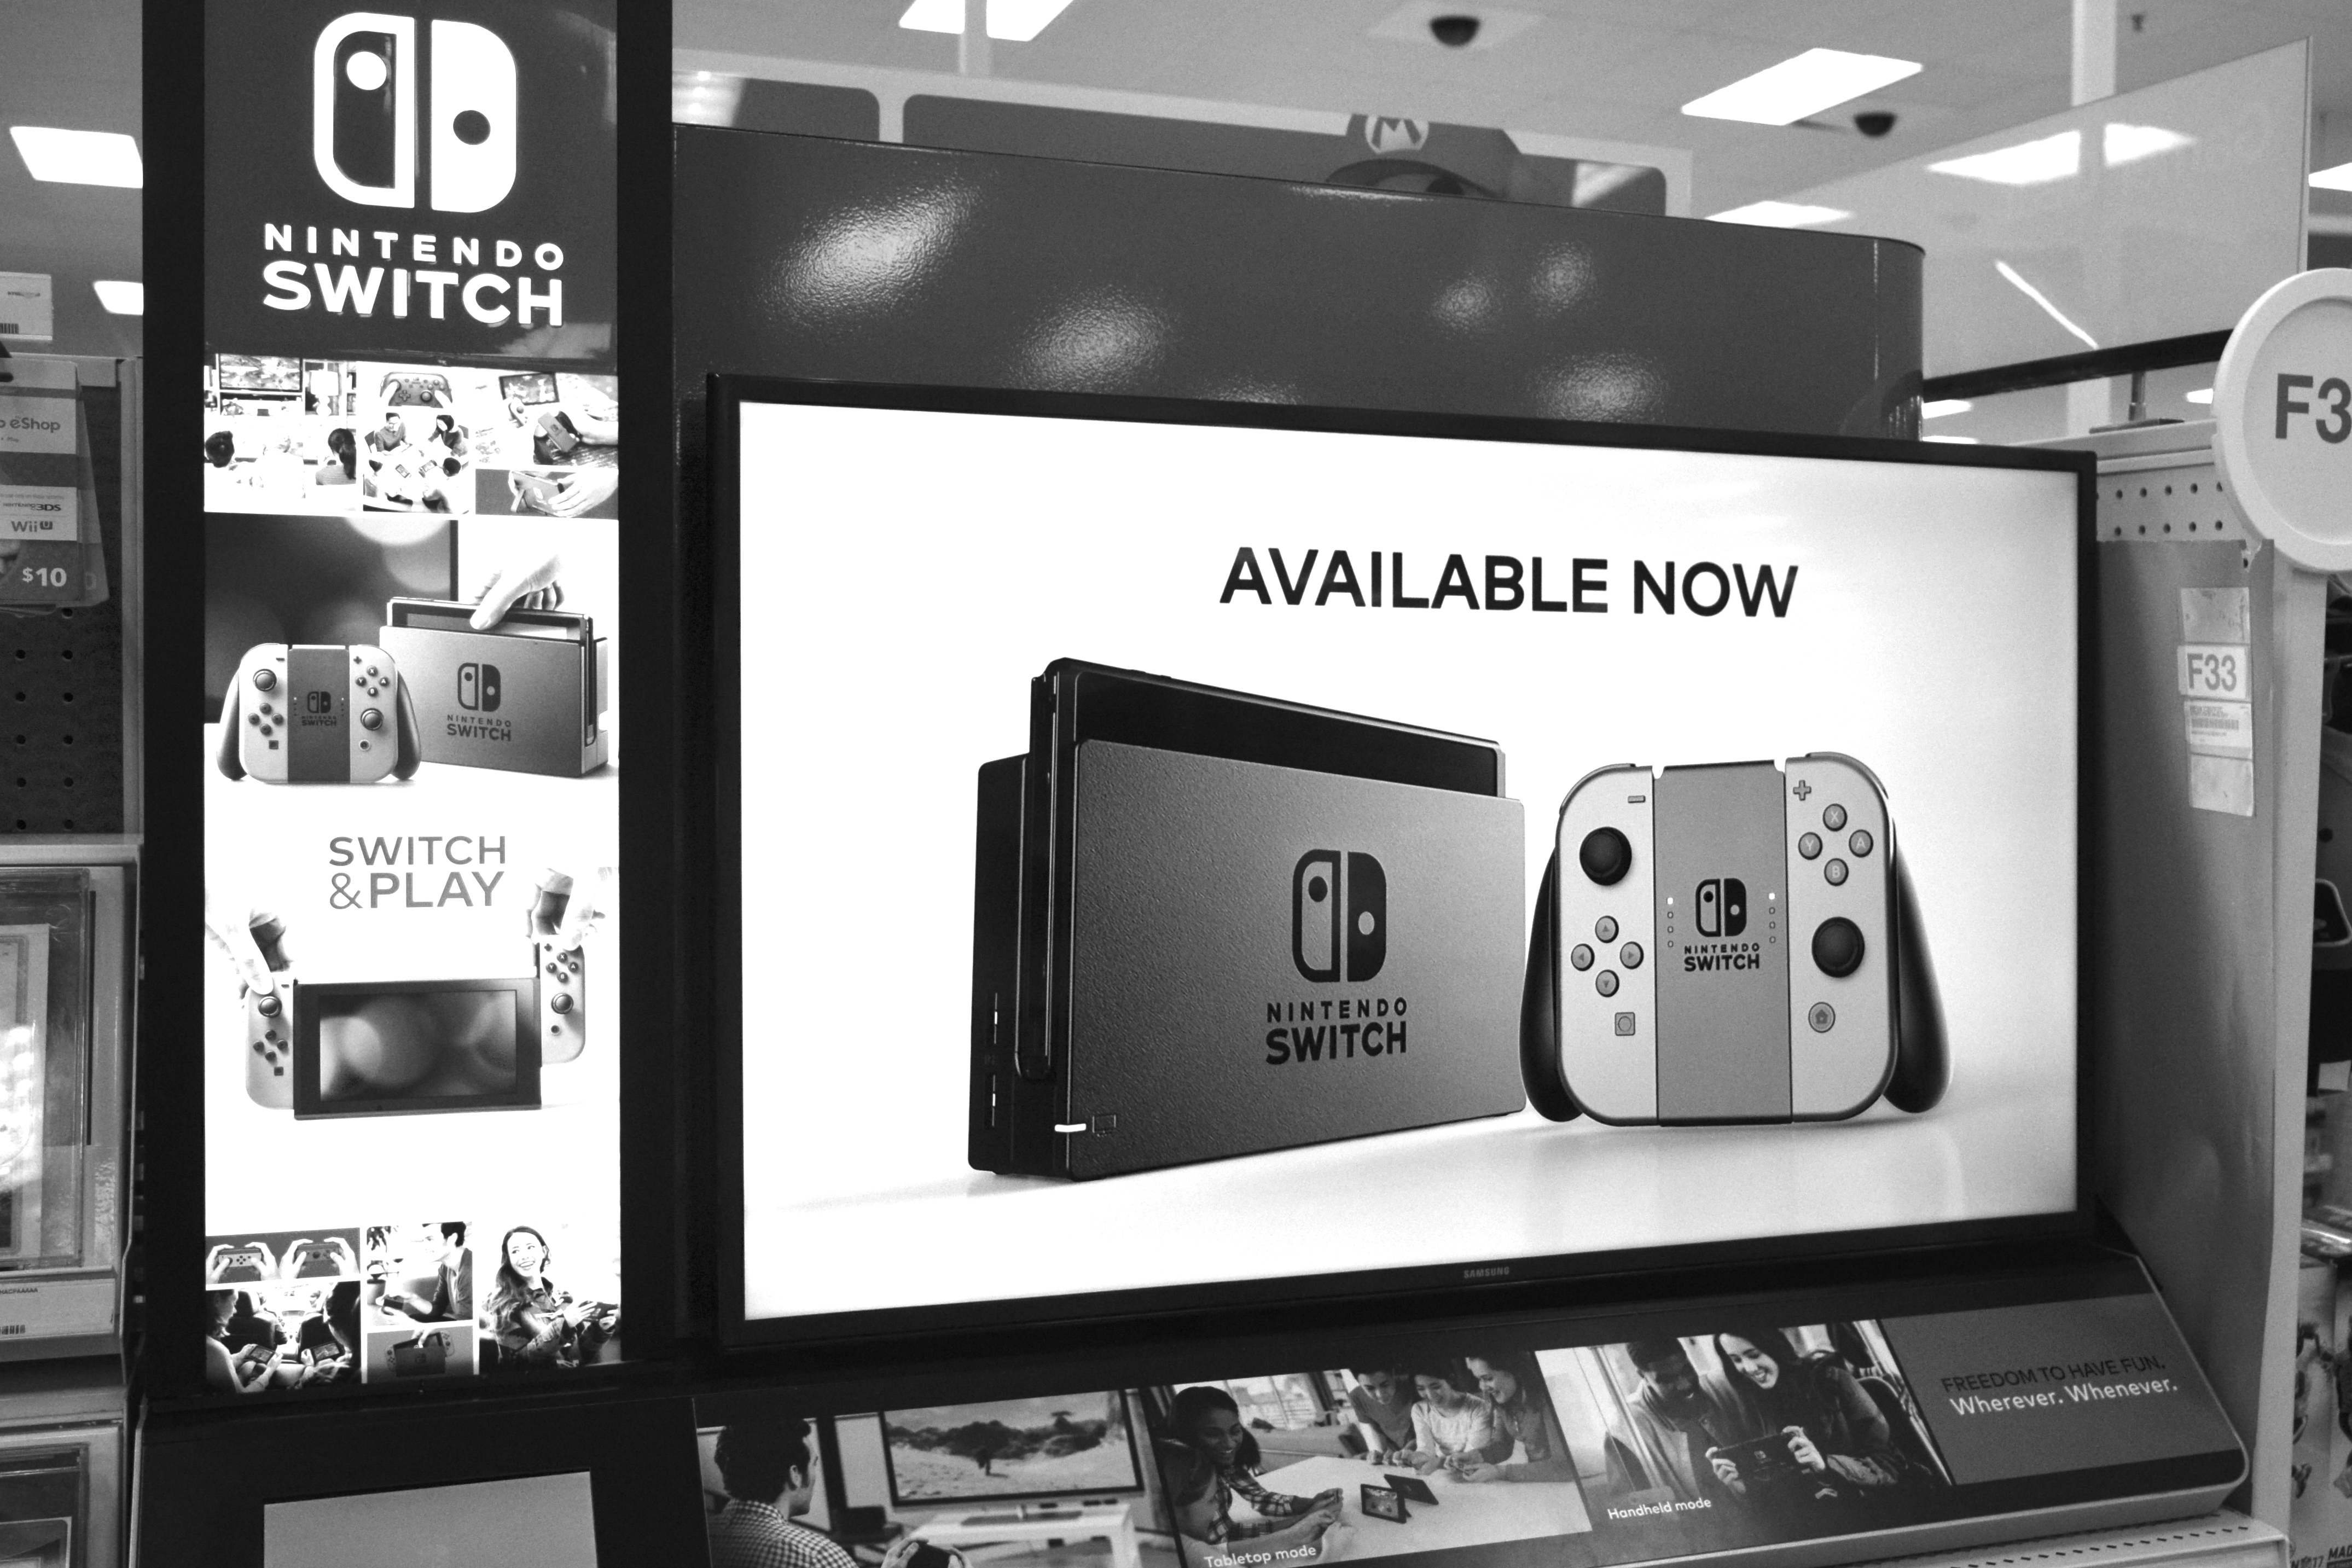 The New Nintendo Switch Proves to be Revolutionary